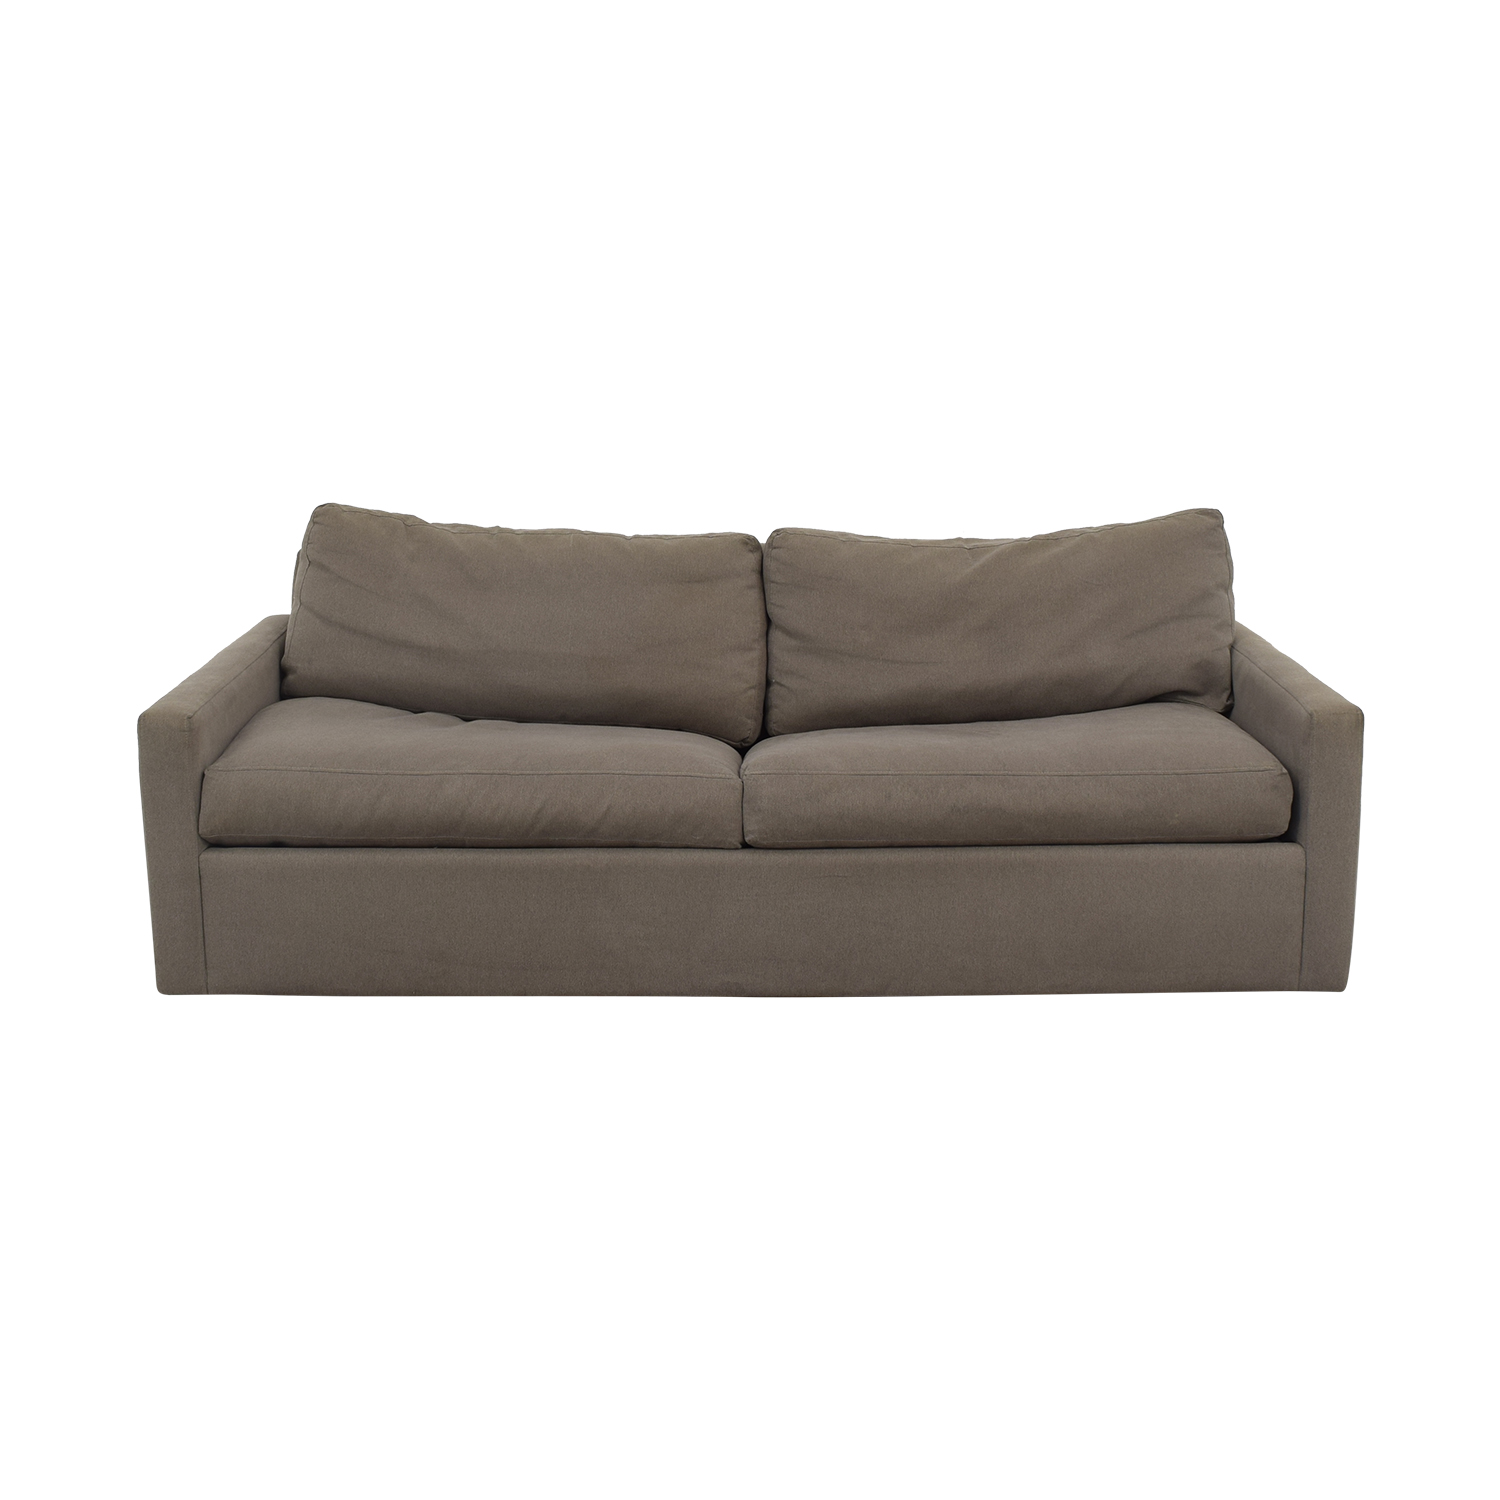 Room & Board Room & Board Easton Sleeper Sofa discount